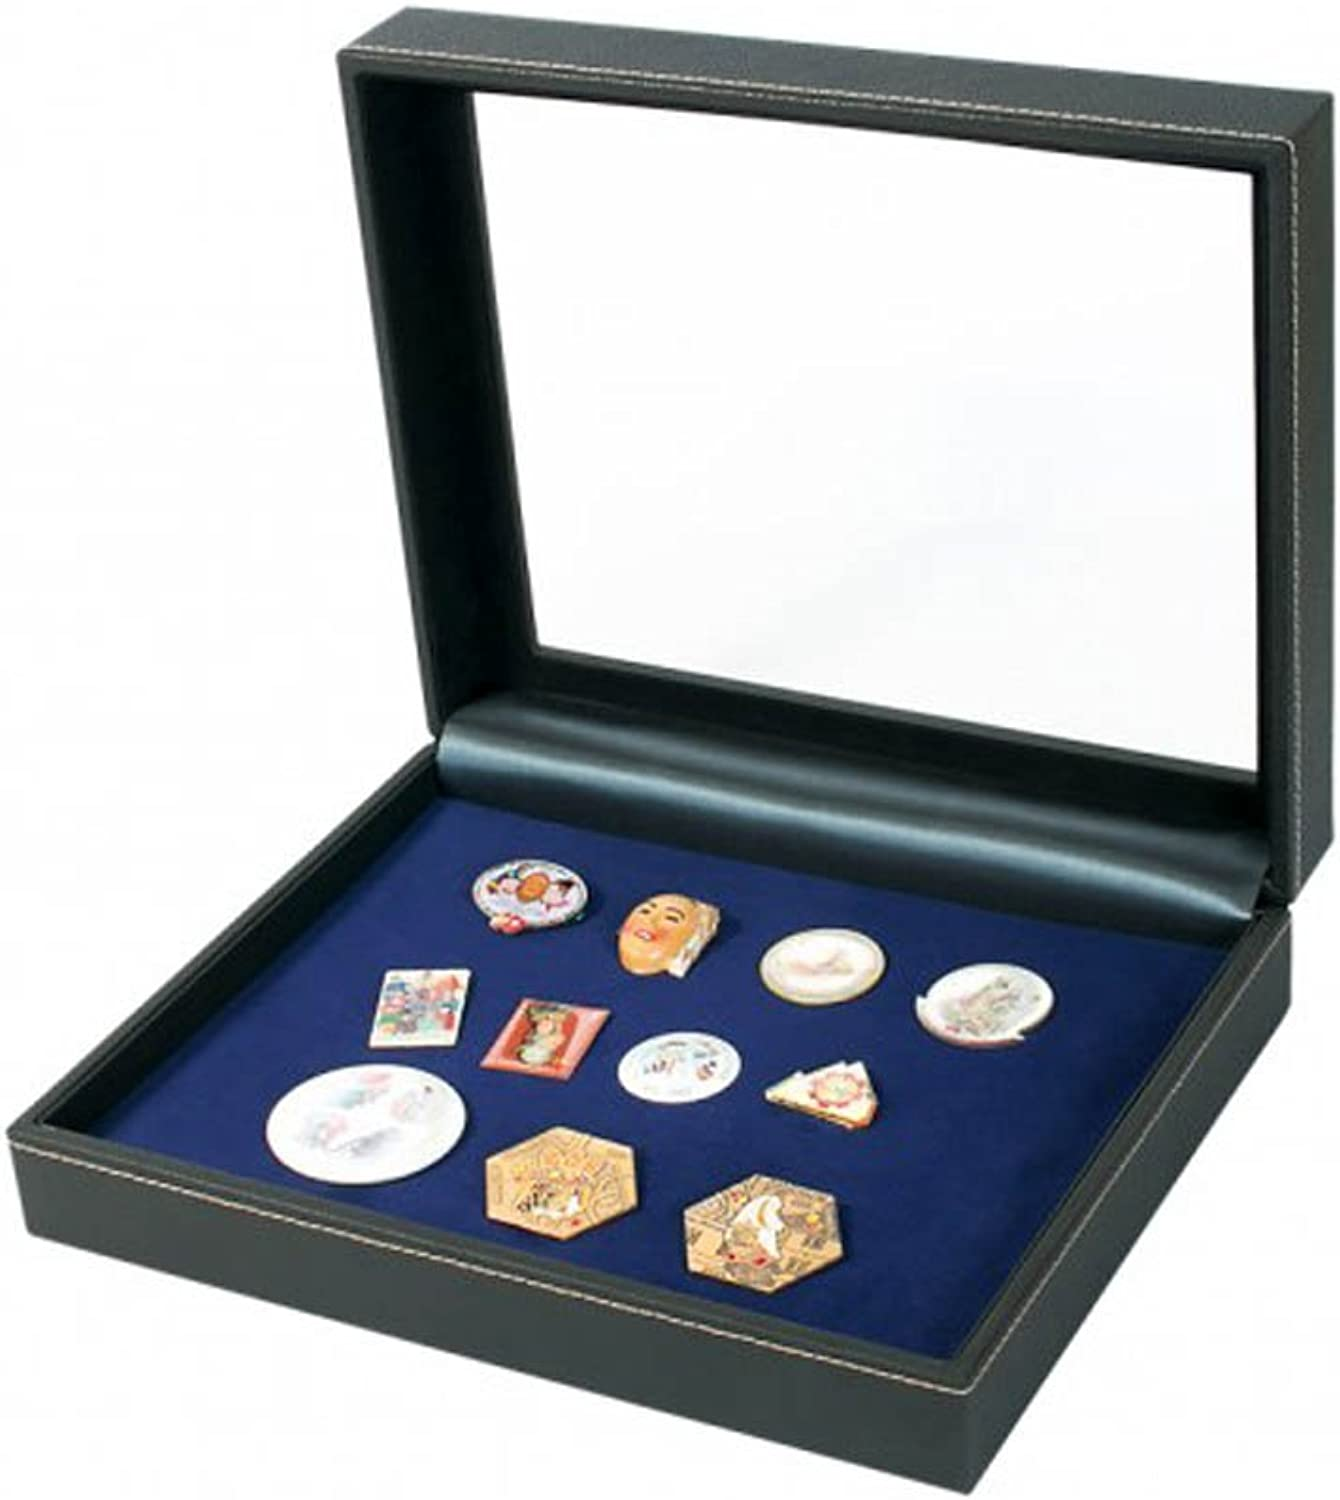 Lindner 23692419E Collecting case NERA VARIUS PLUS with dark bluee insert for pins,medals and emblems